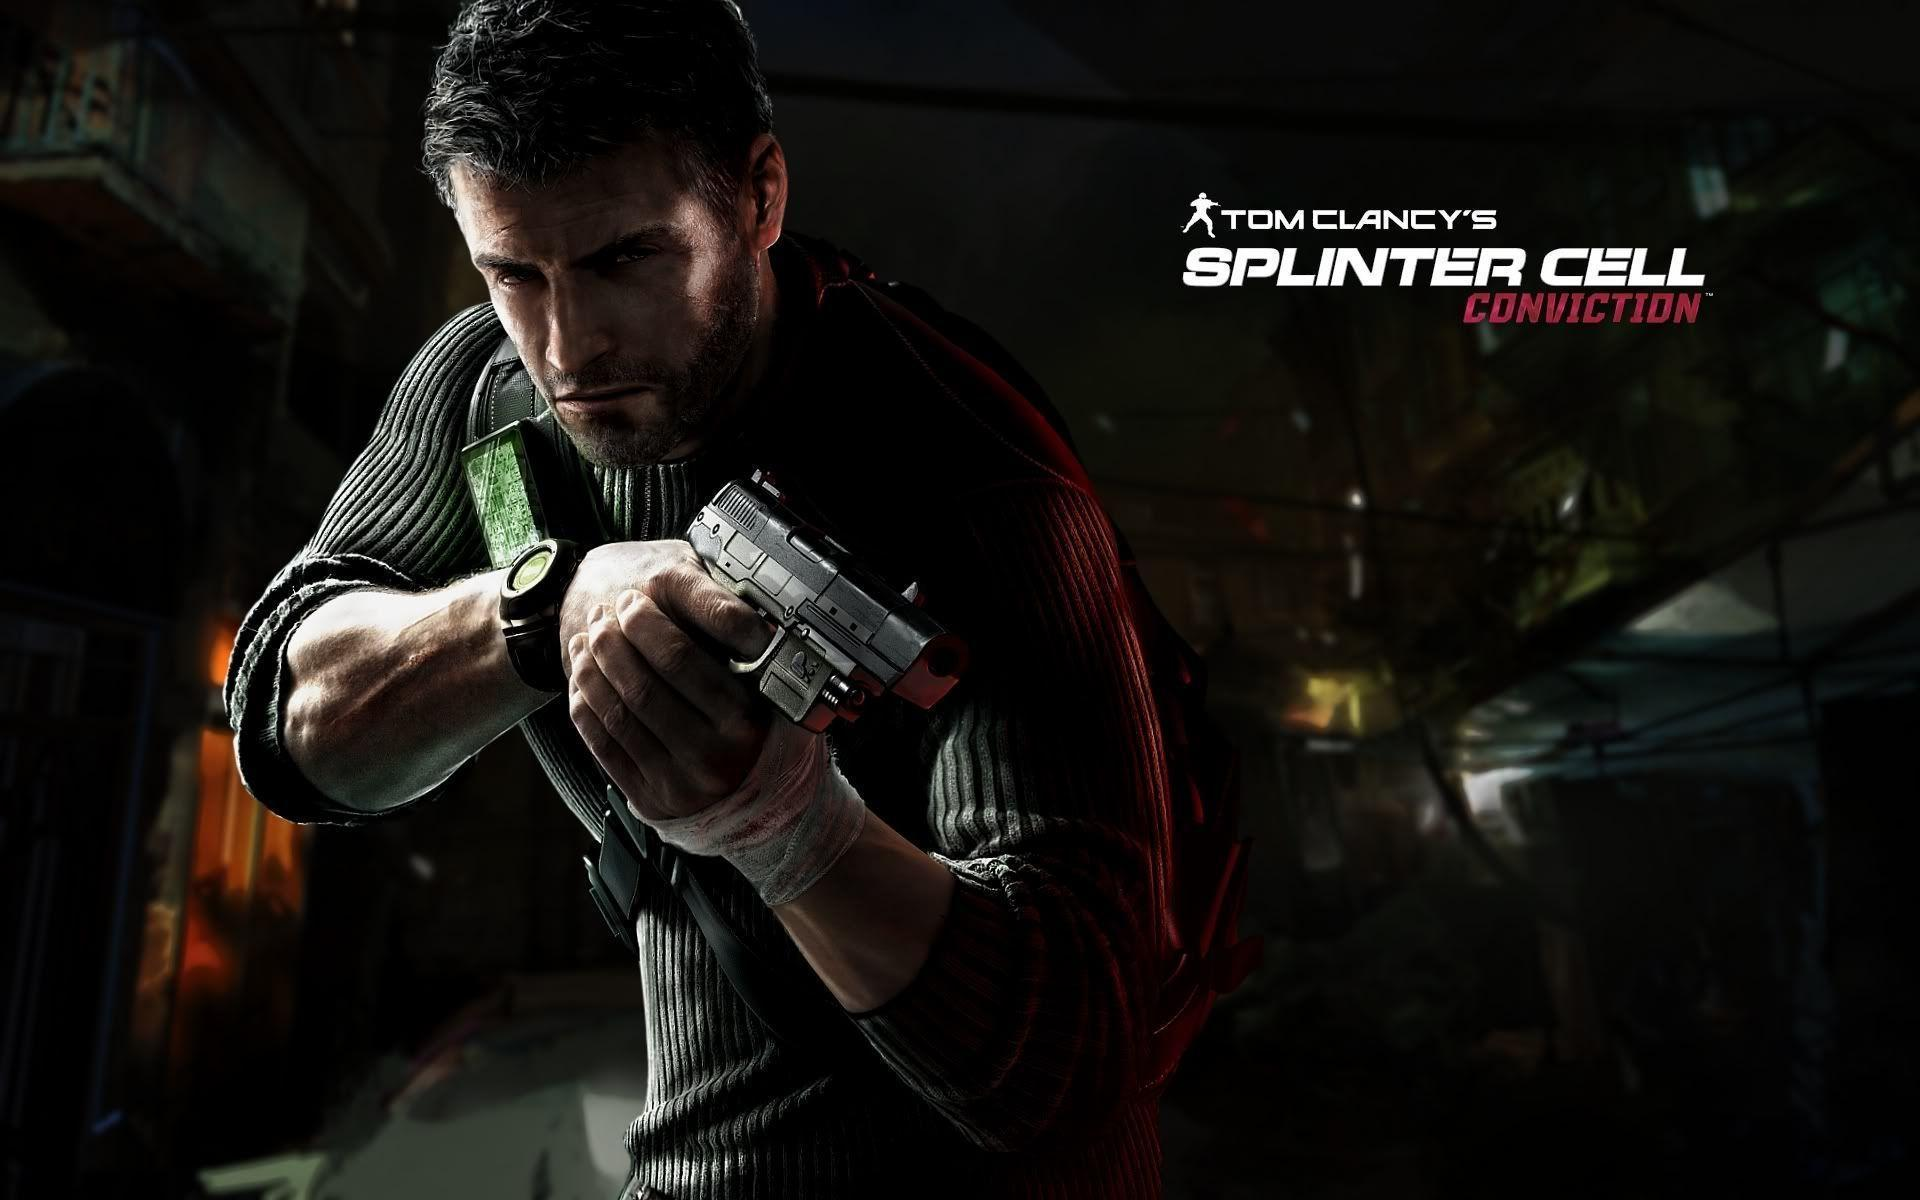 Splinter Cell Conviction Wallpapers - Wallpaper Cave